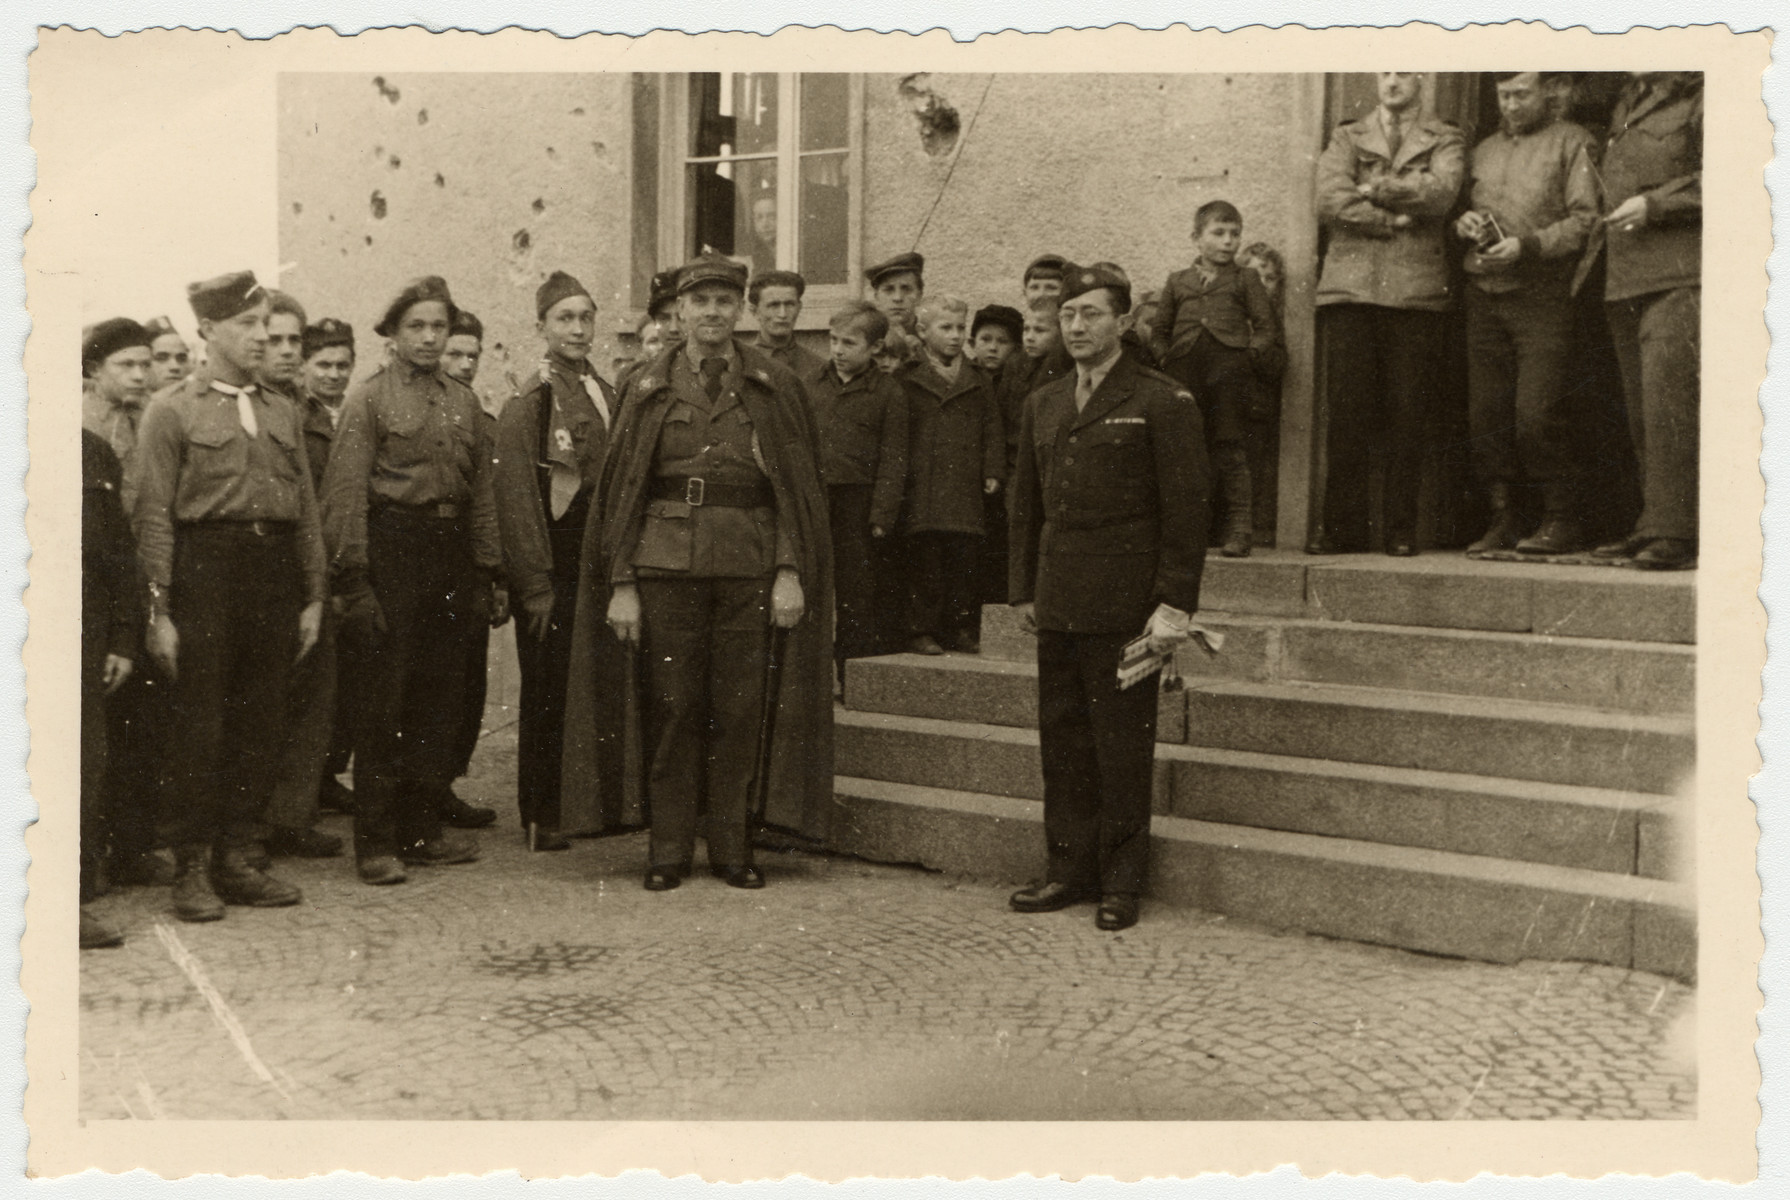 UNRRA director, Mordecai Schwartz poses with Polish displaced persons in the Aschaffenburg camp.